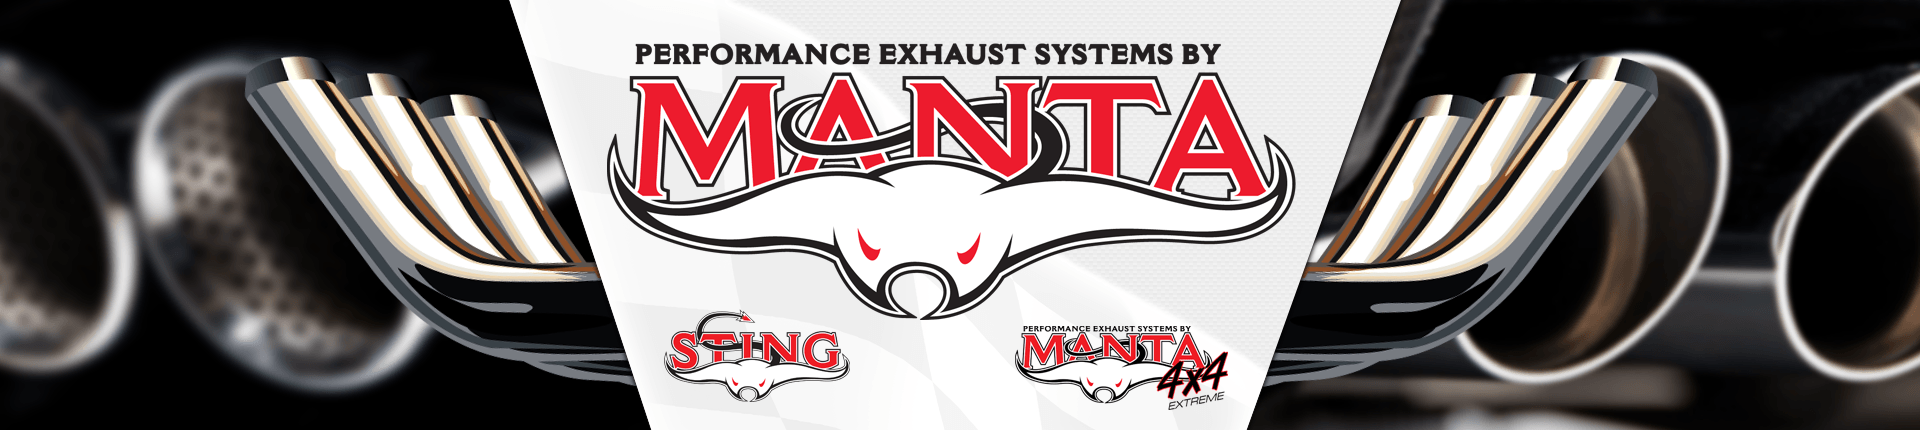 Manta Performance Exhaust Systems